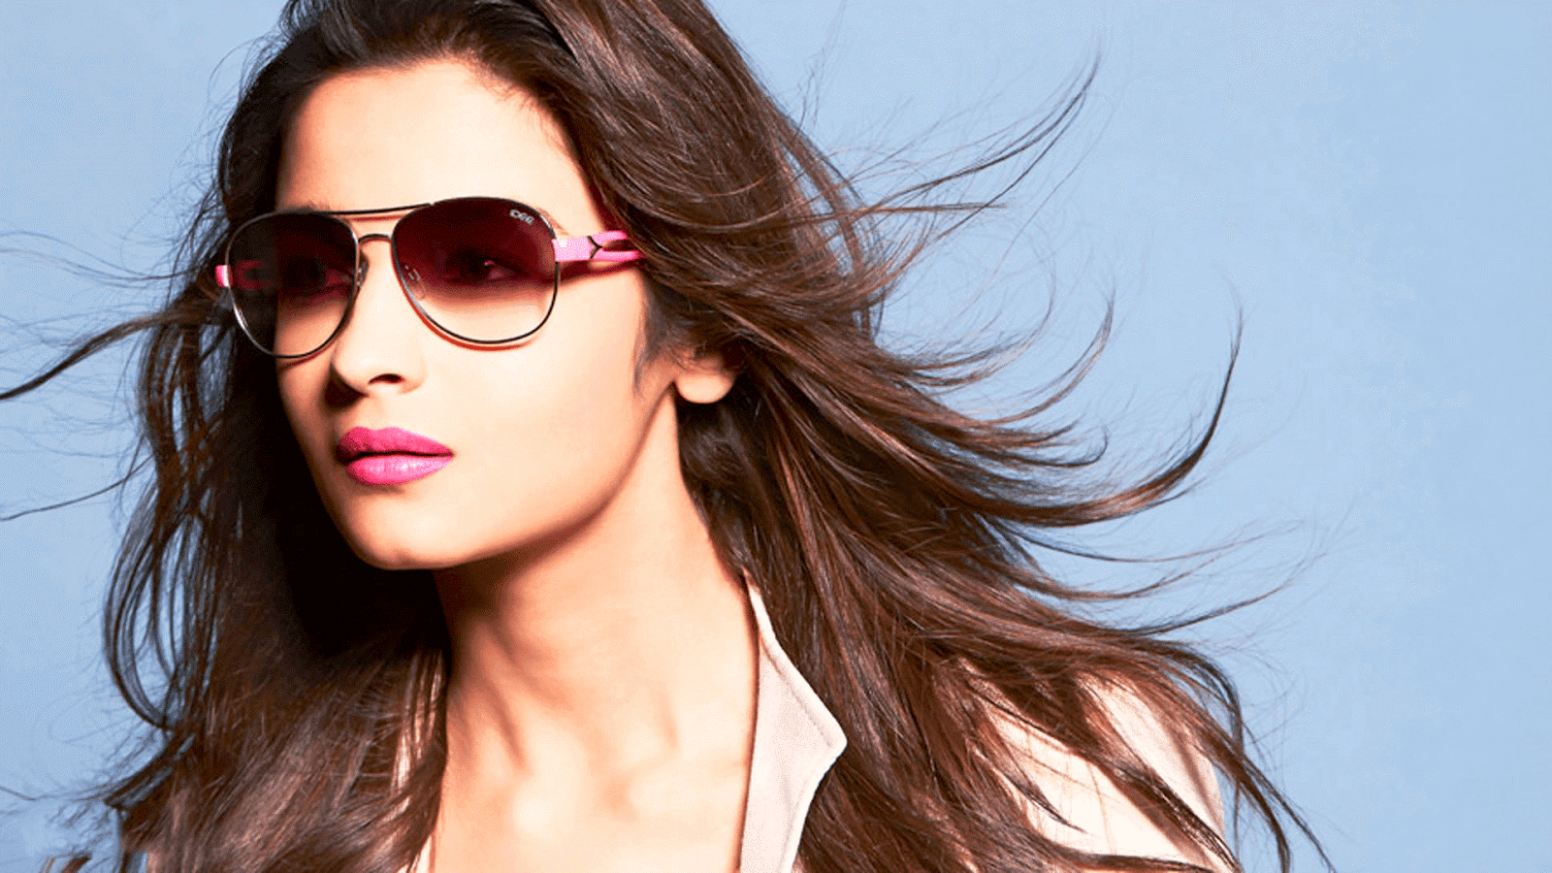 Alia Bhatt Wallpapers HD Download Free 1080p ...